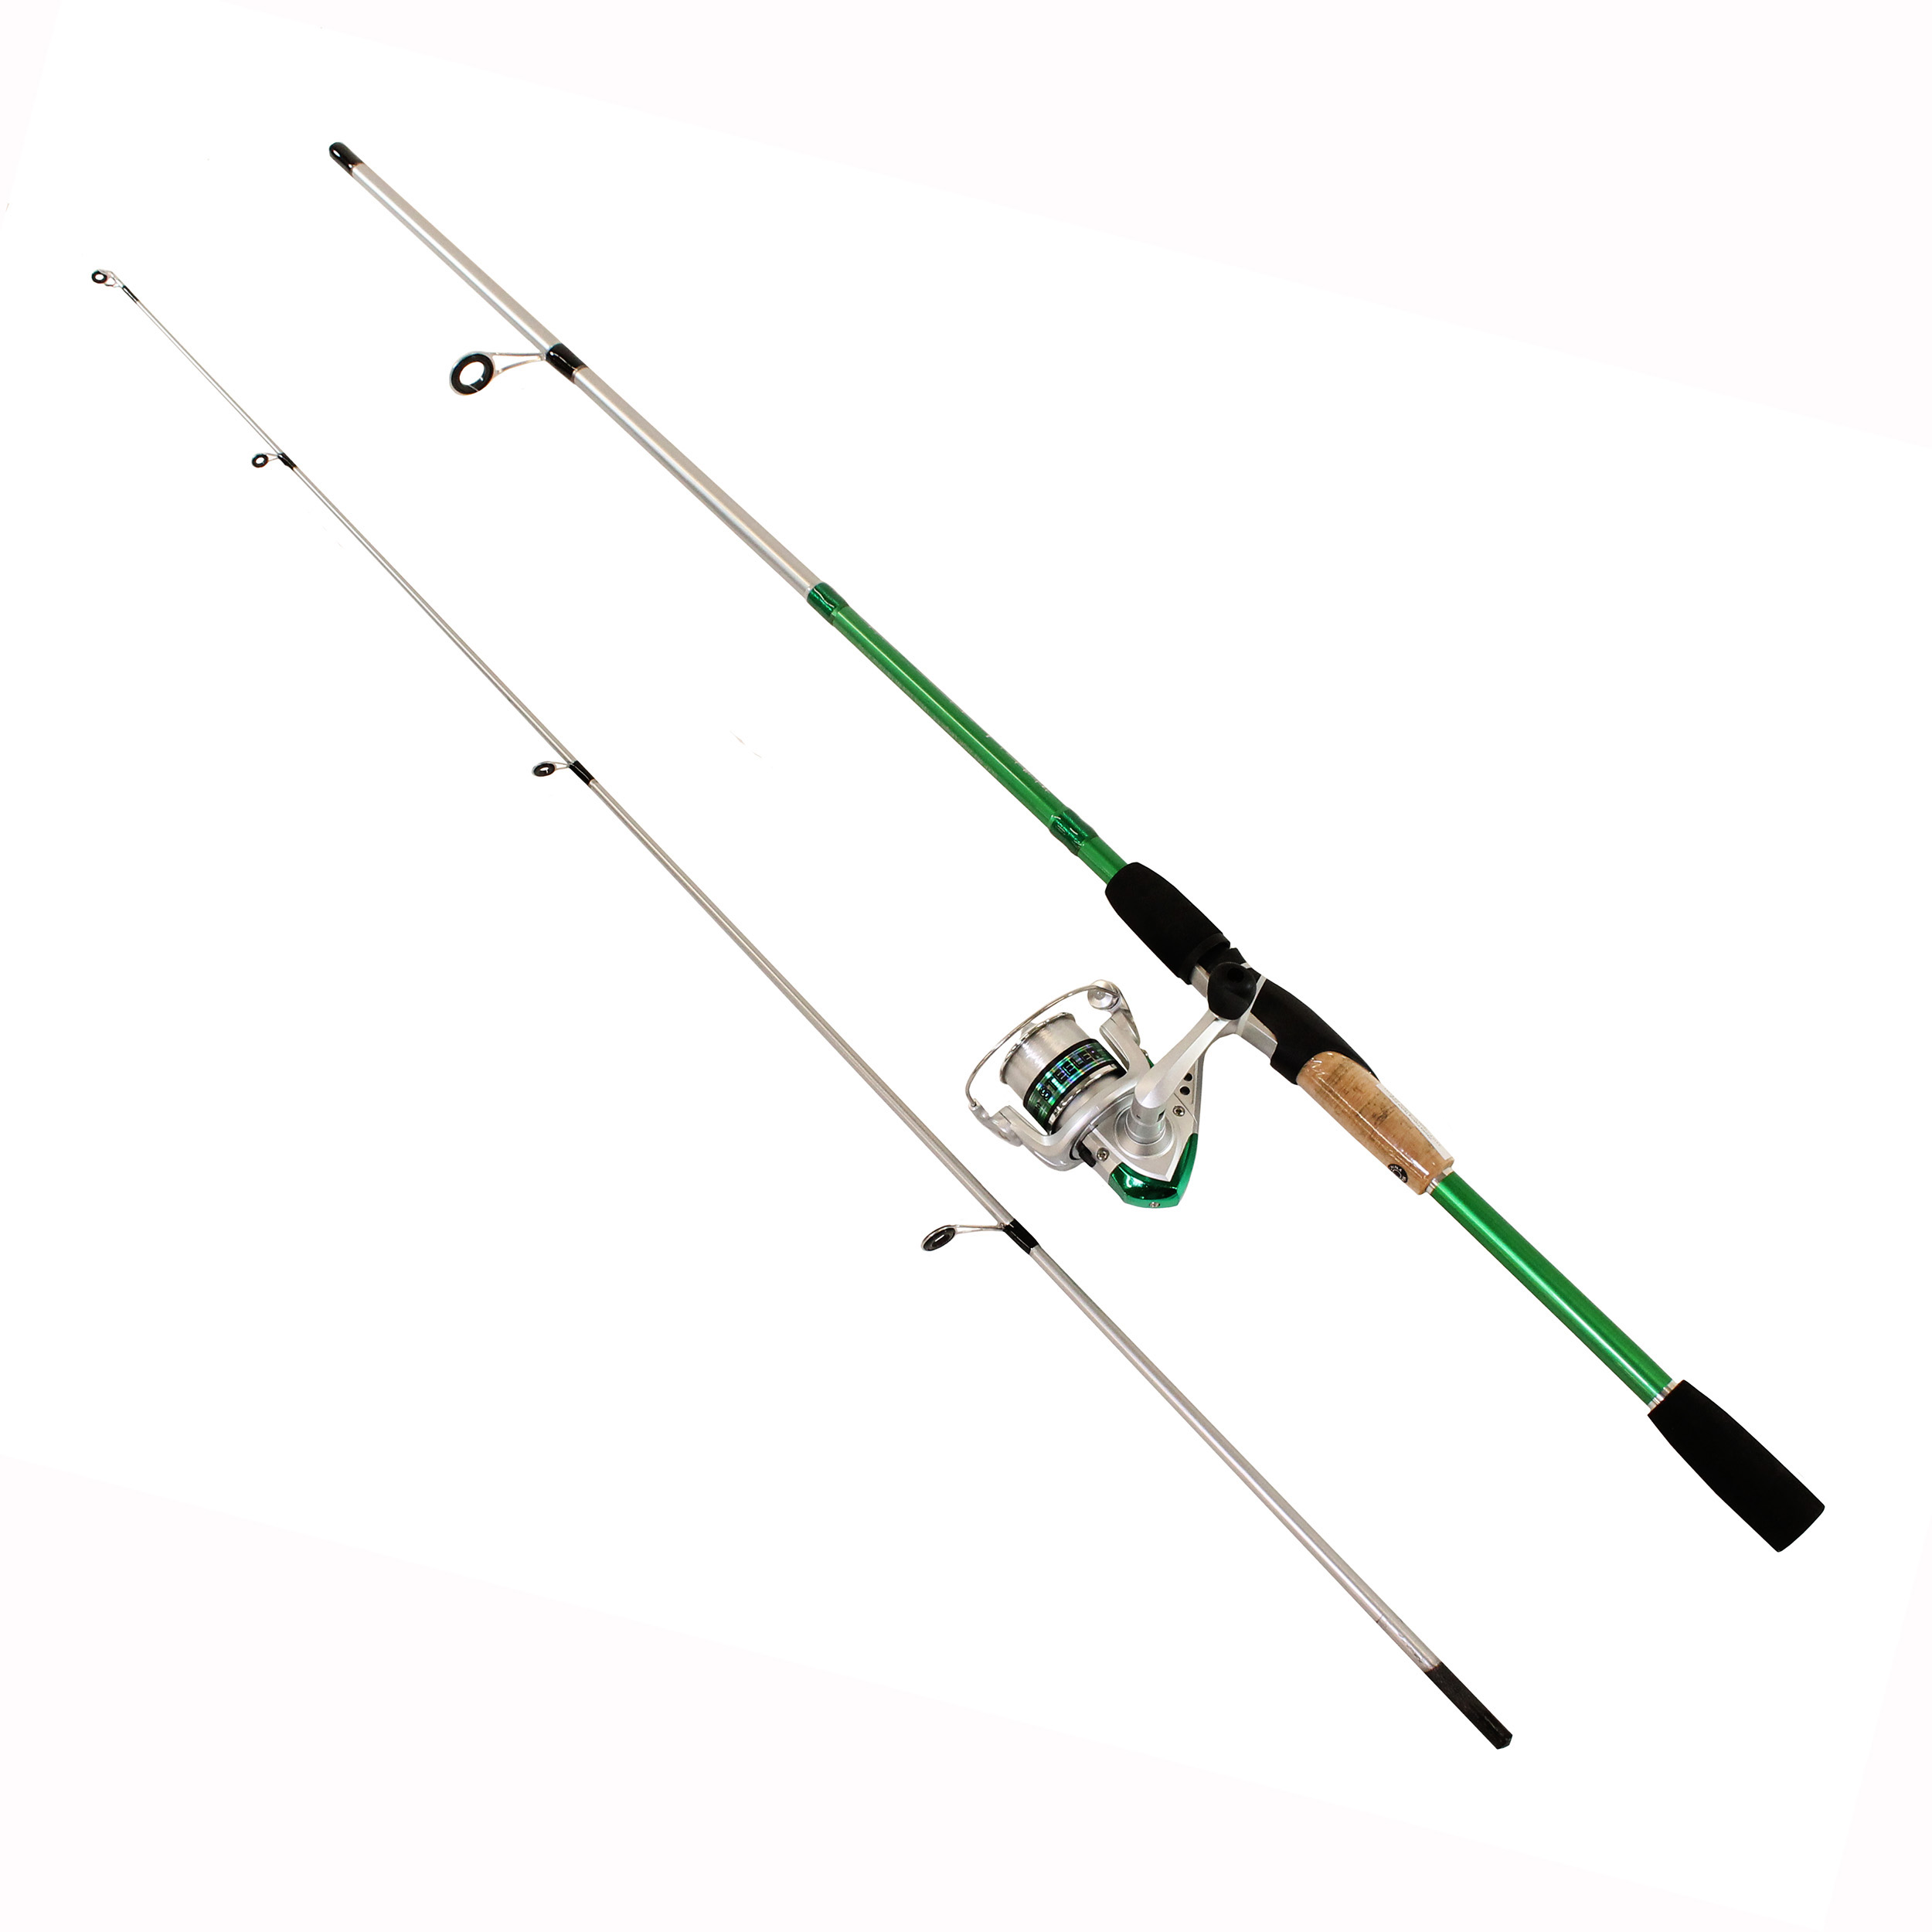 Okuma Steeler XP Spinning Combo 20 Reel Size, 1BB Bearings, 6'6